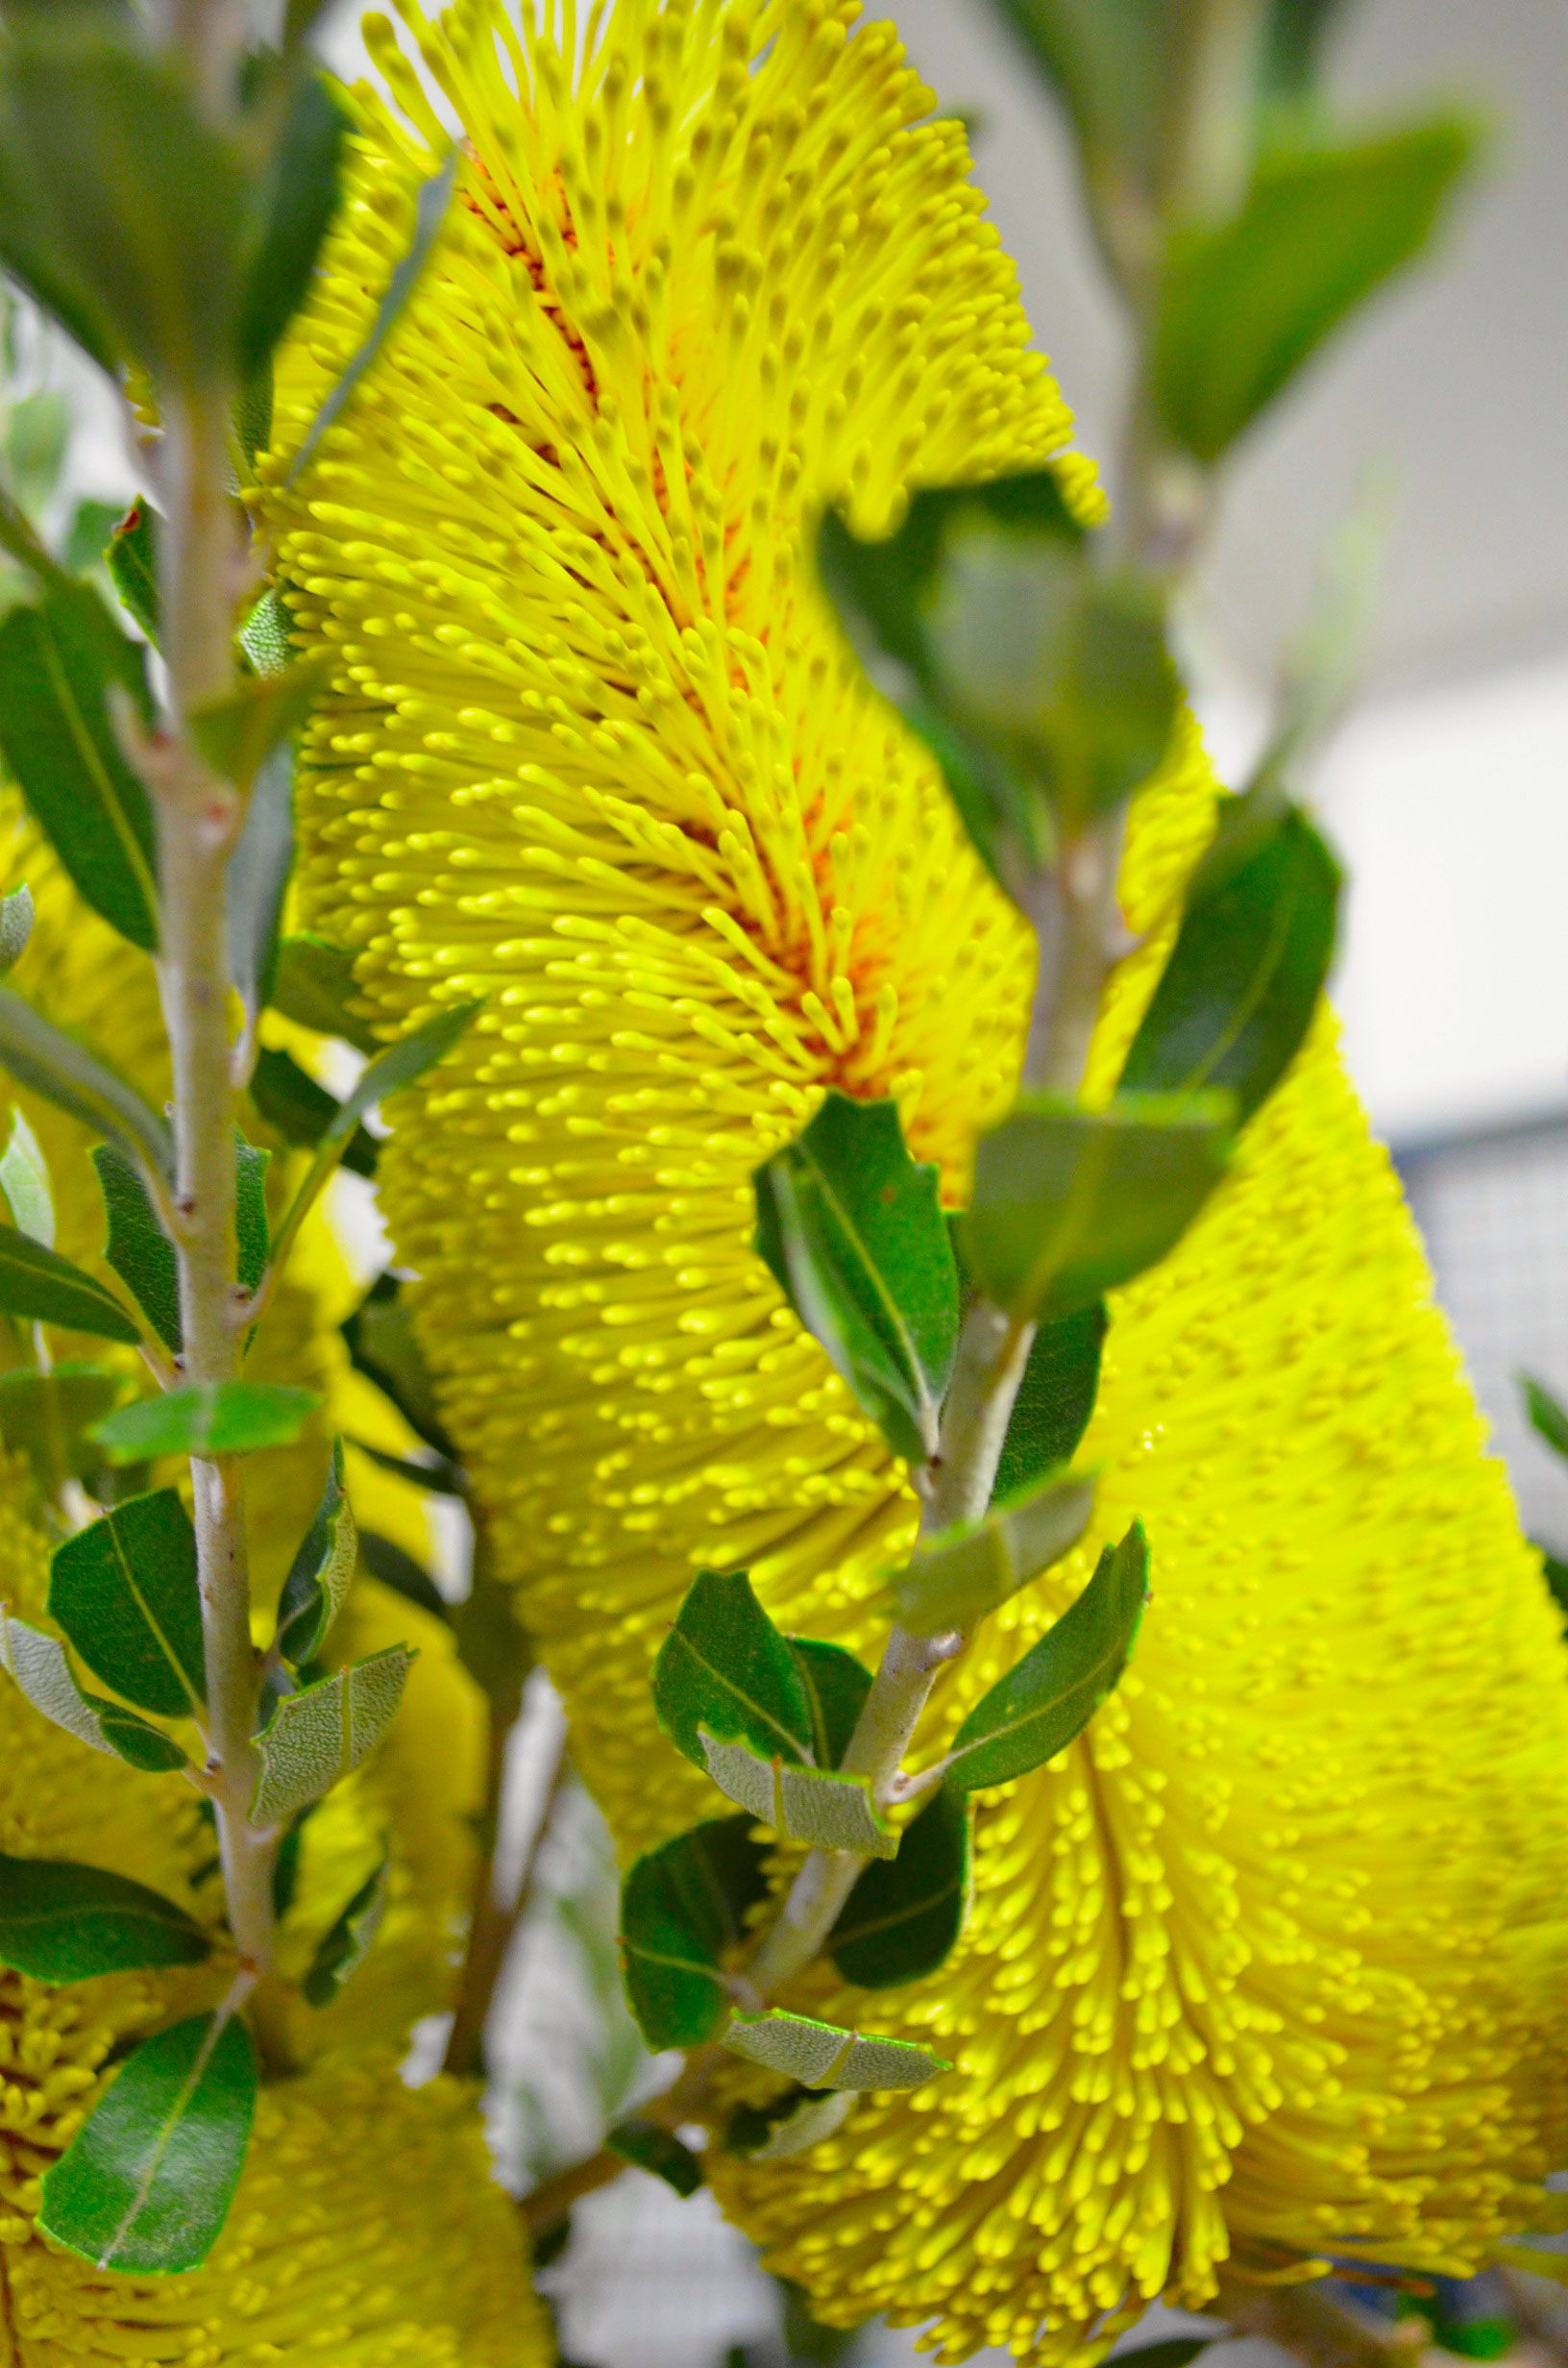 Banksia Fresh flowers online, Australian native flowers